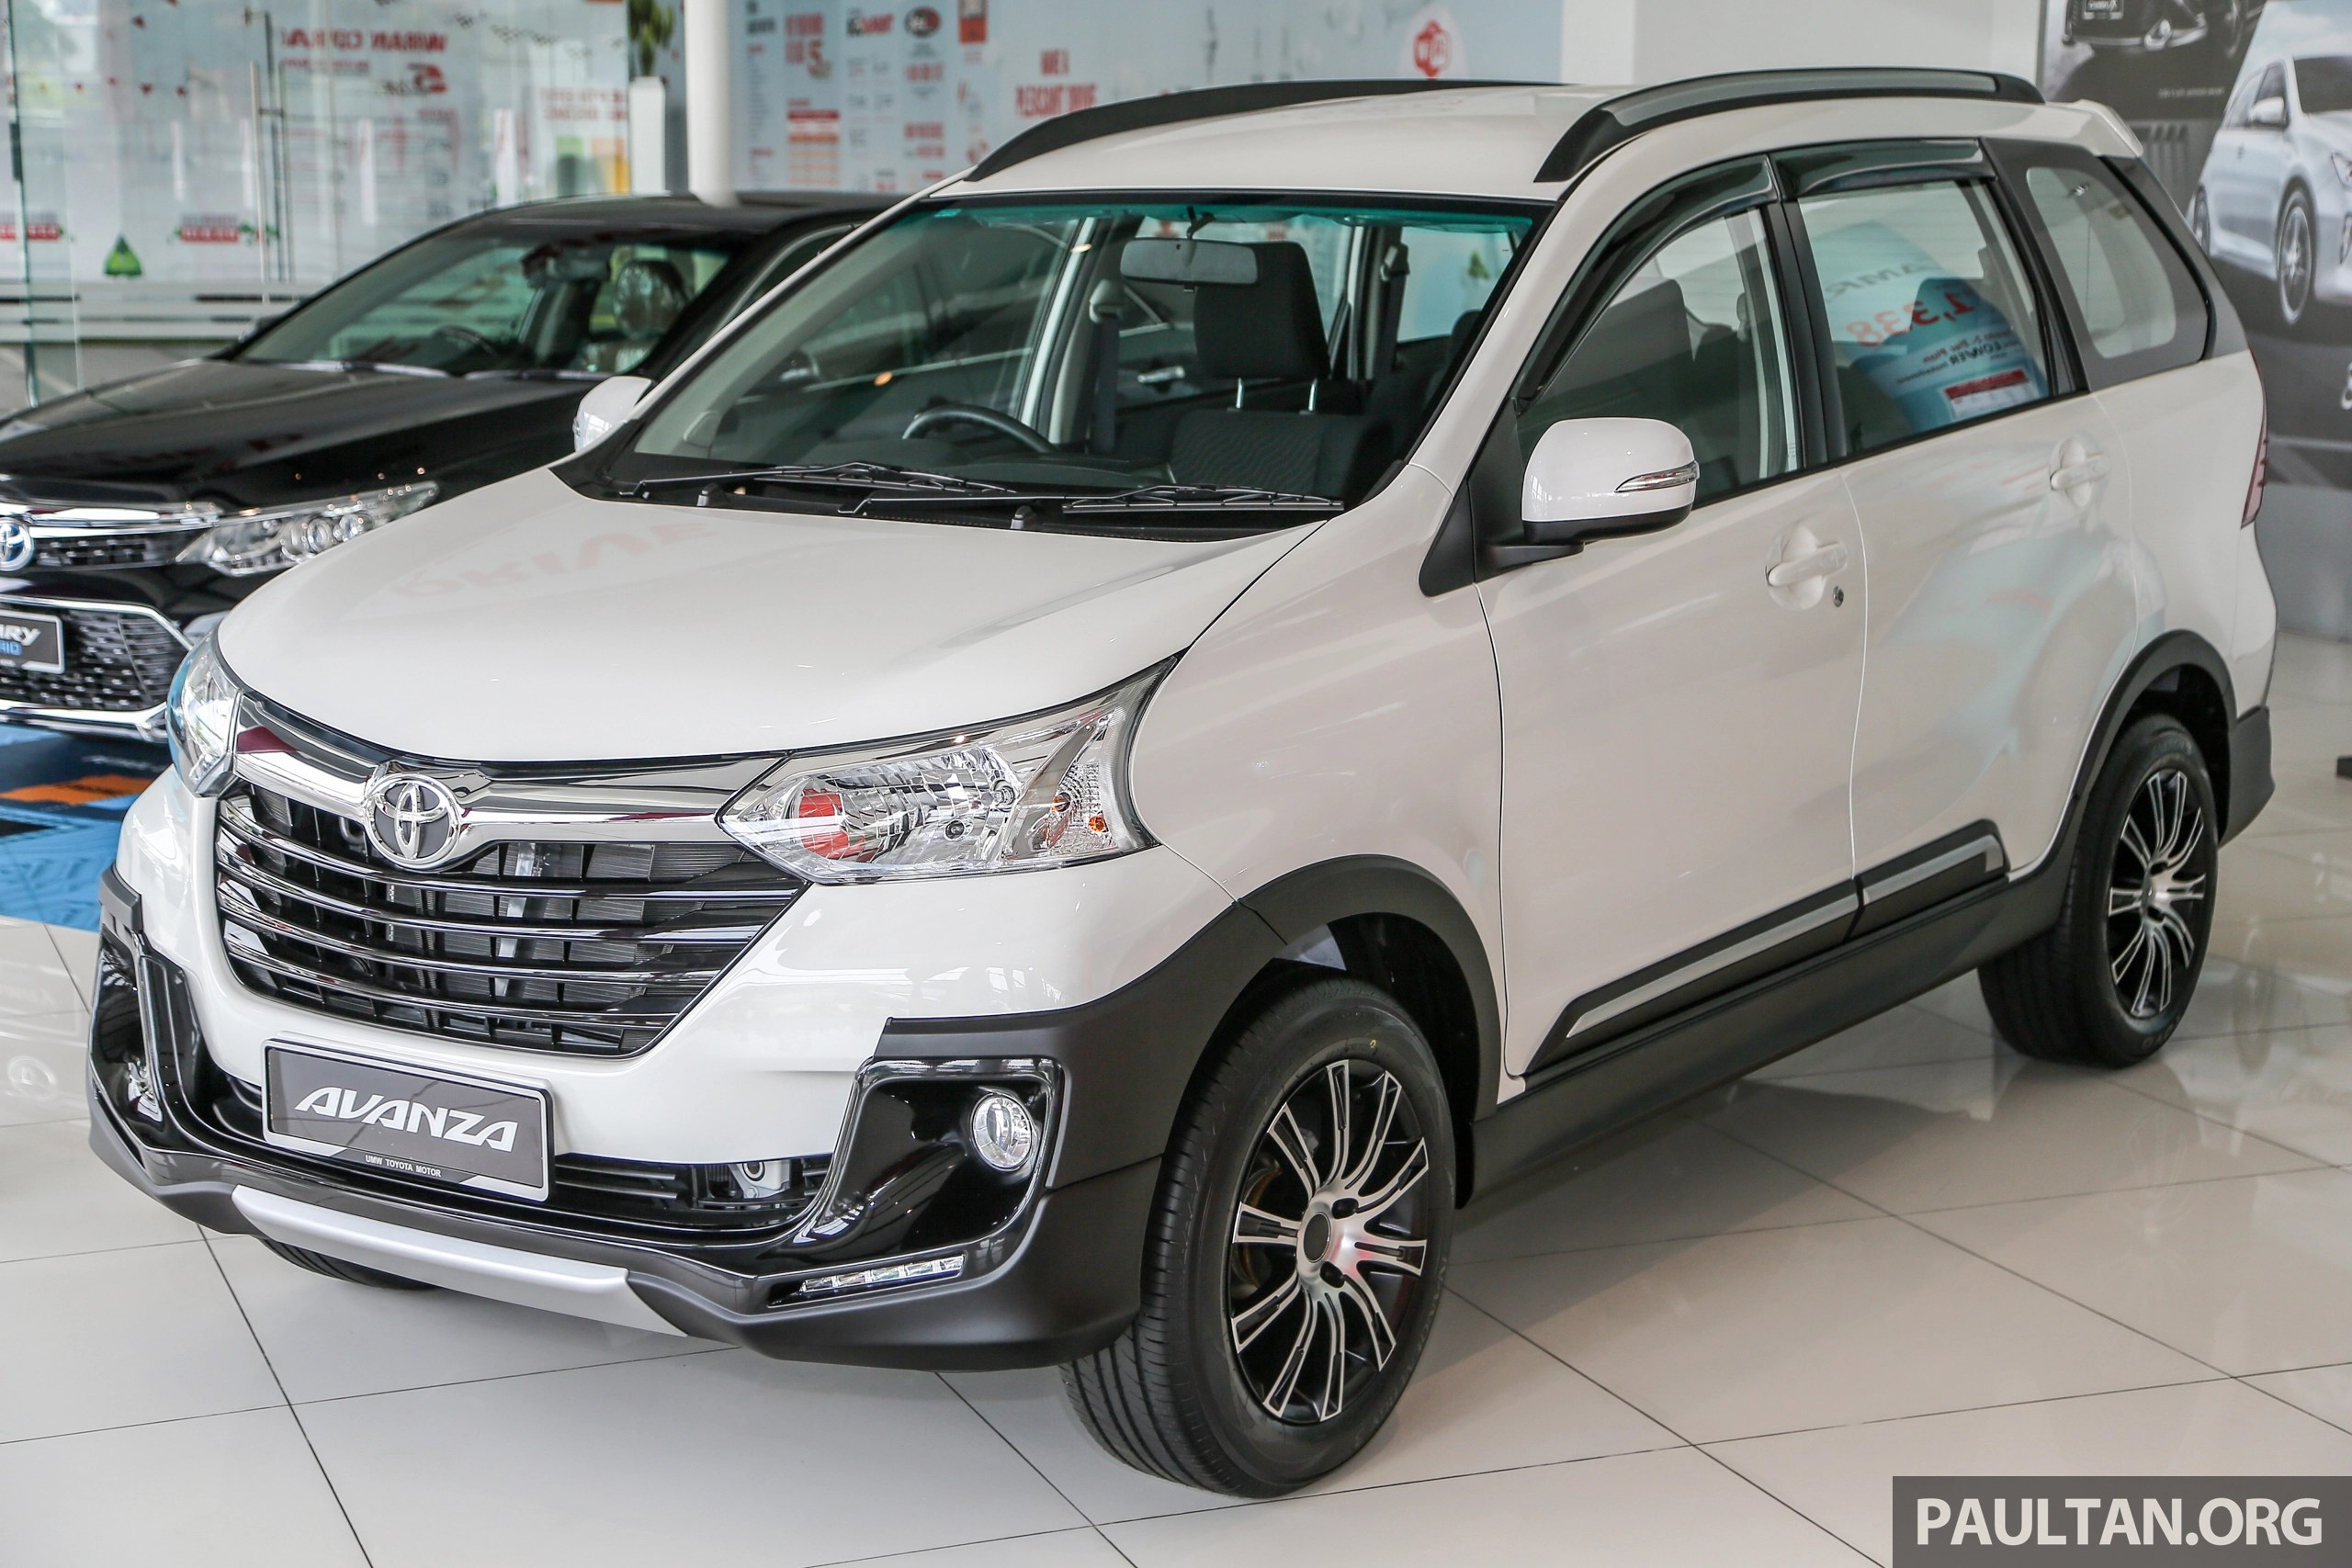 grand new avanza g 1.5 1.3 m/t 2018 gallery toyota 1 5x goes for the suv look